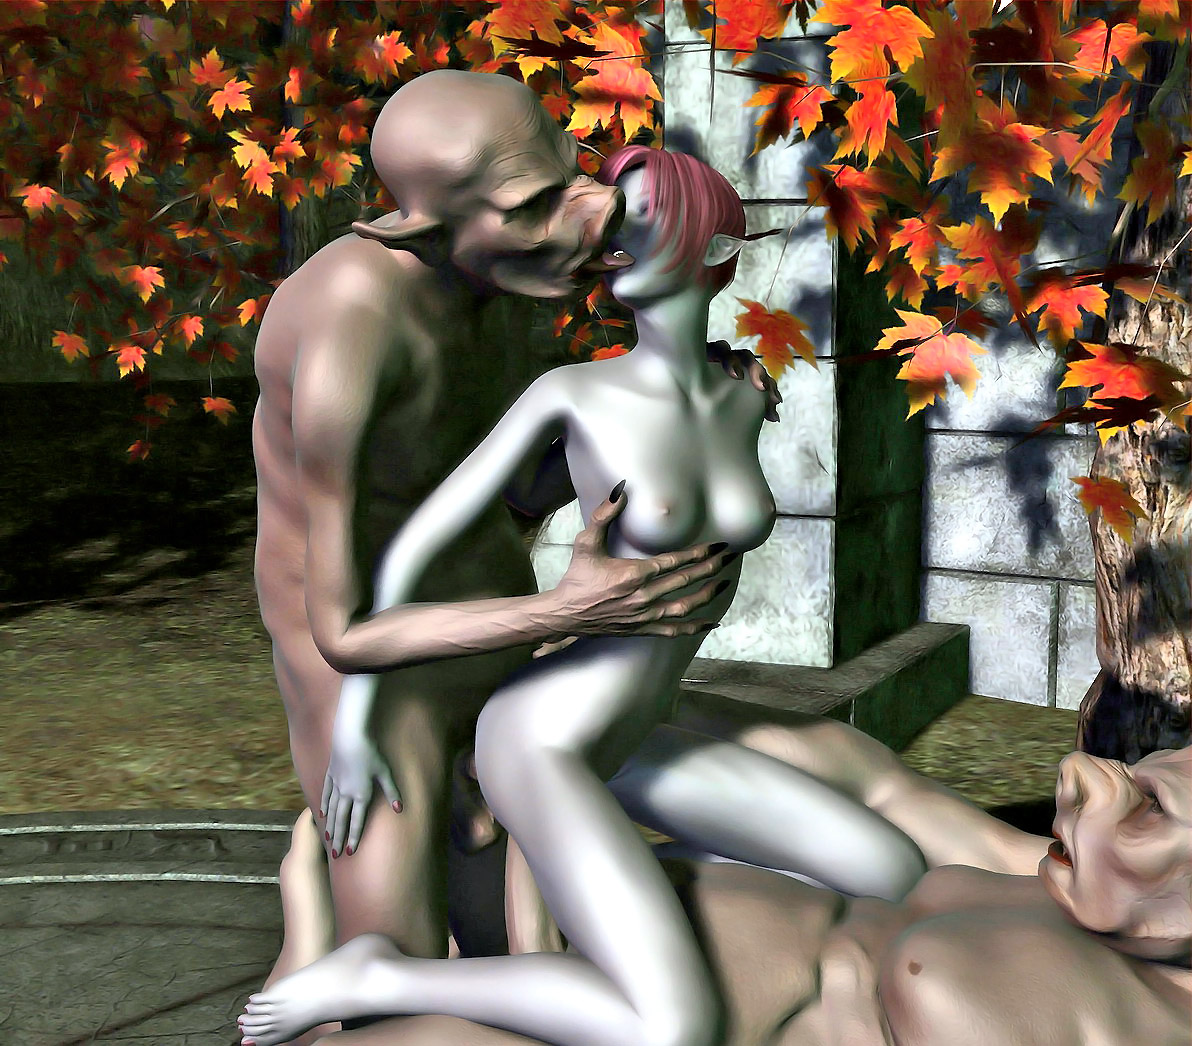 Fucked by house elves naked picture